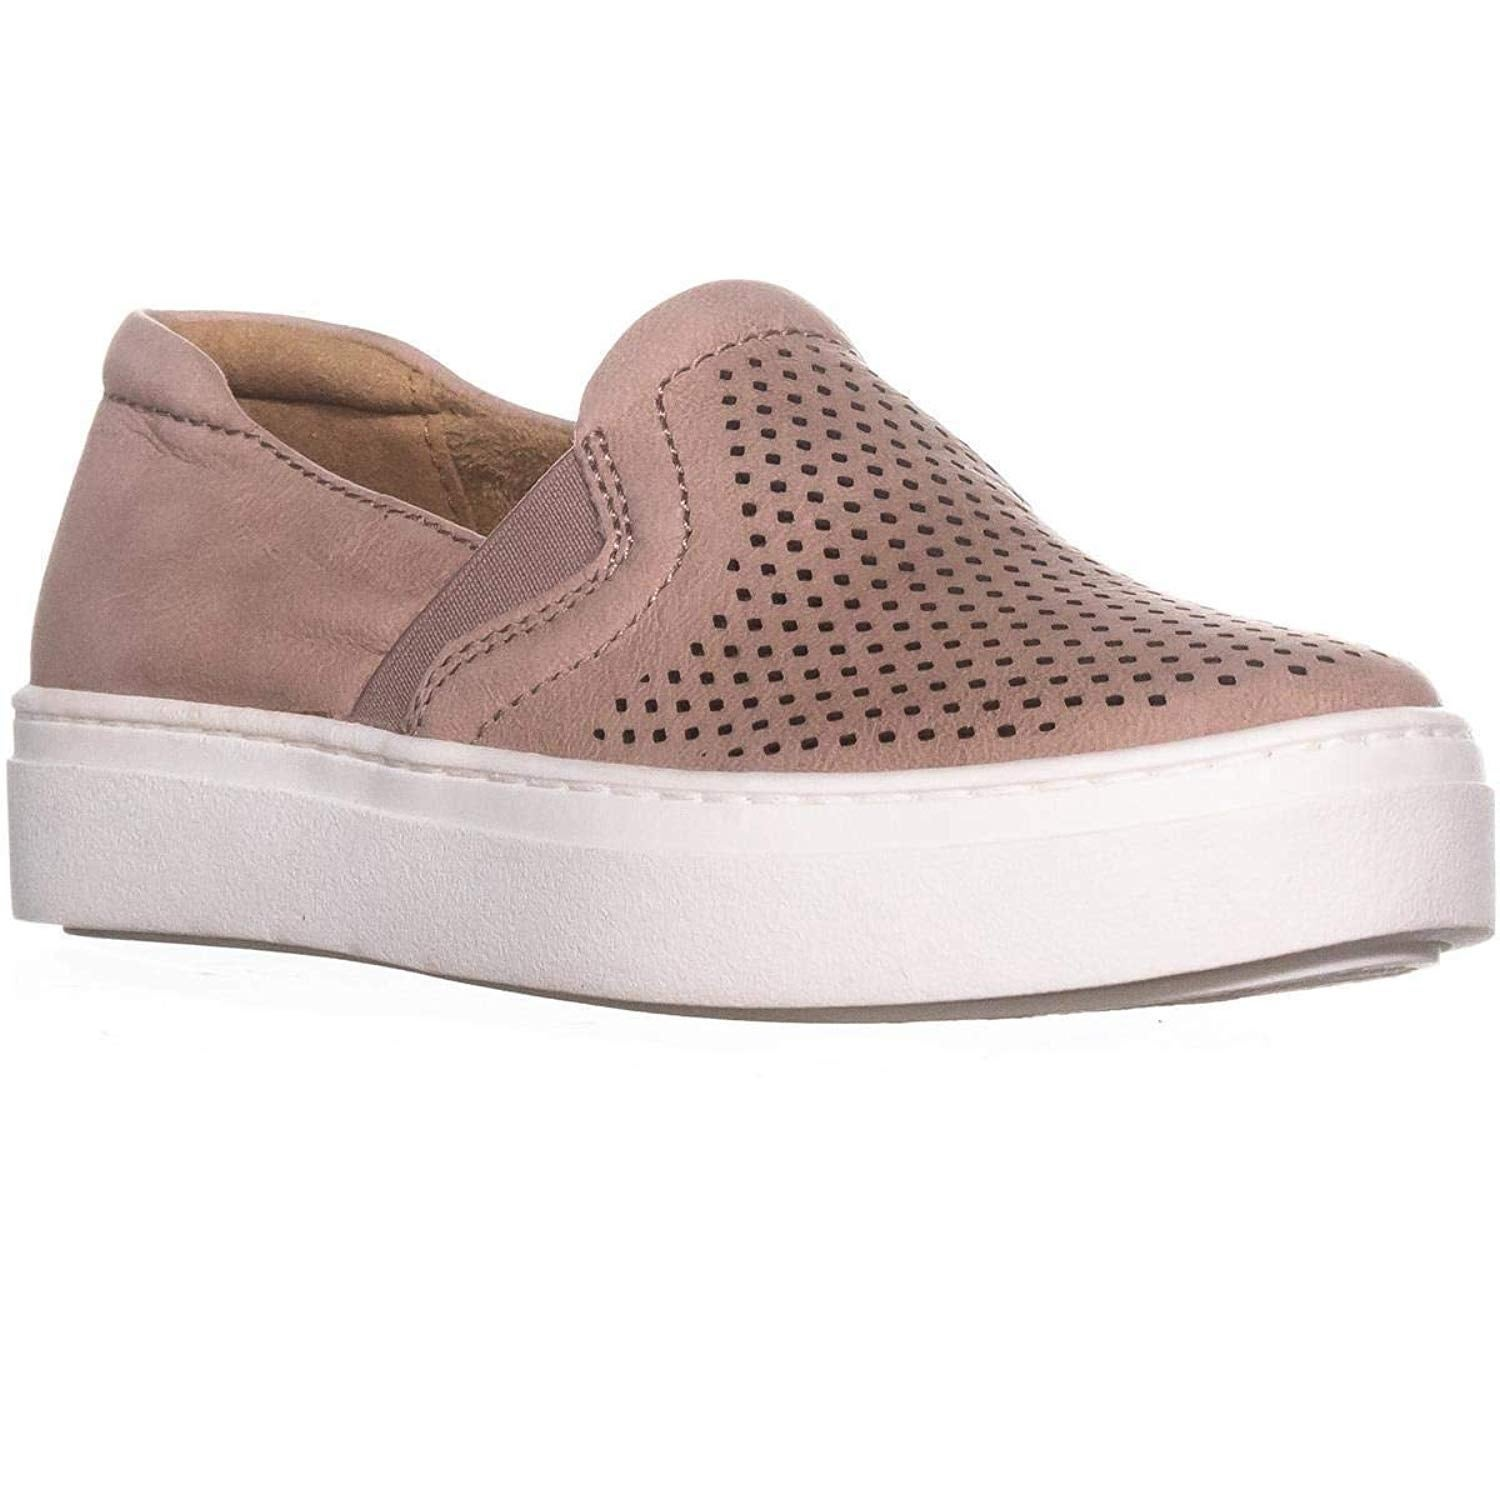 c2be6560b9a2 Shop Naturalizer Carly Platform Slip-On Sneakers